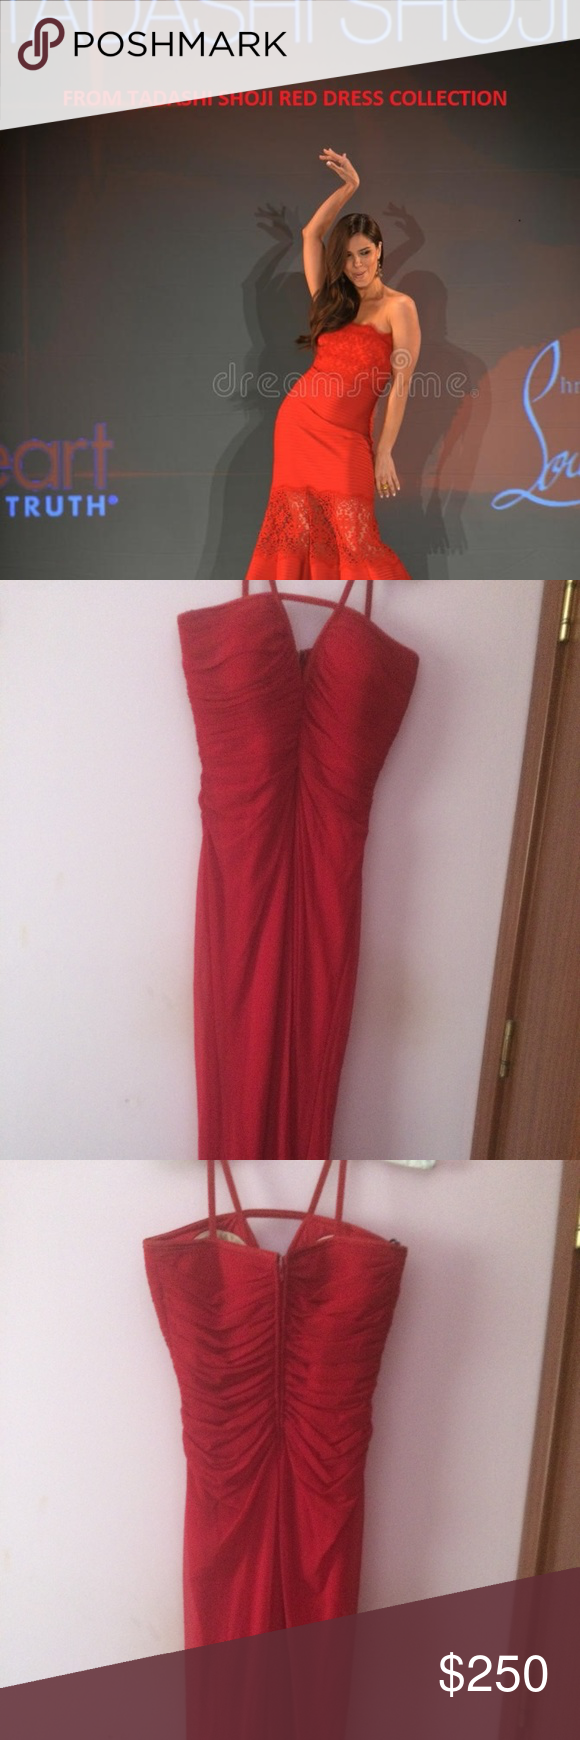 Long red dress from tadashi red dress collection my posh picks